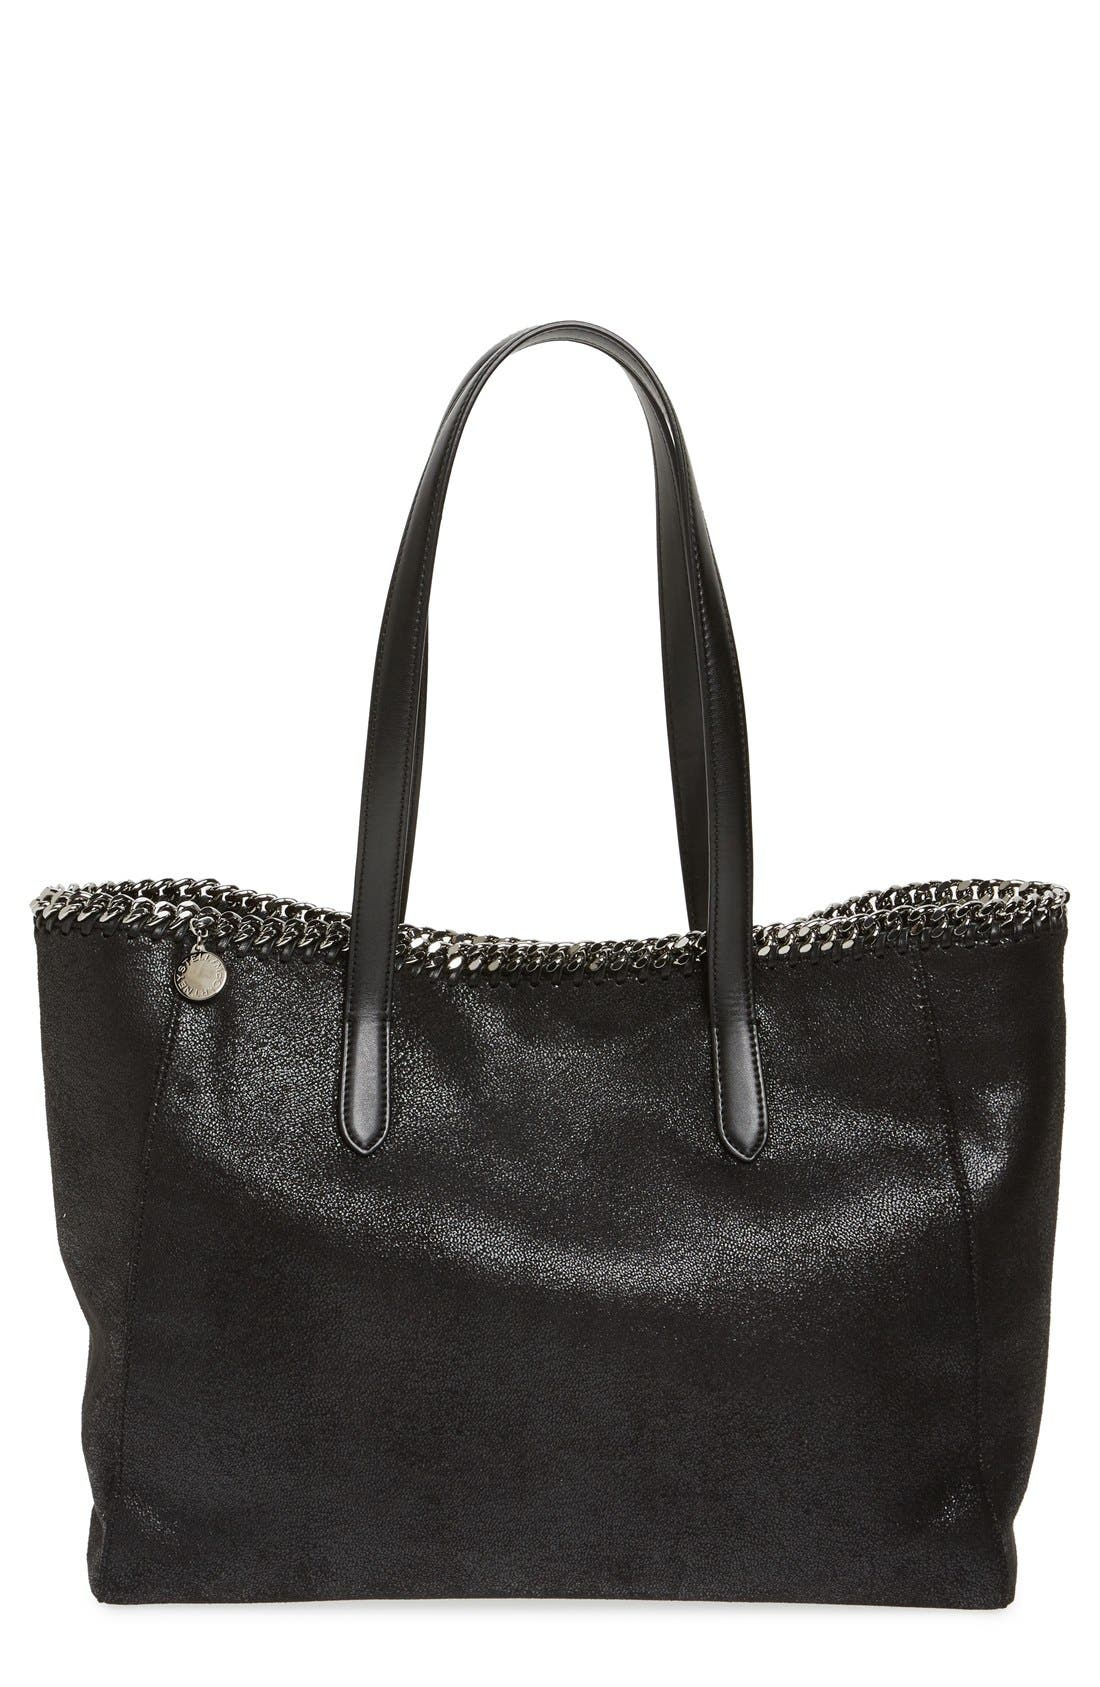 Alternate Image 1 Selected - Stella McCartney 'Falabella - Shaggy Deer' Faux Leather Tote